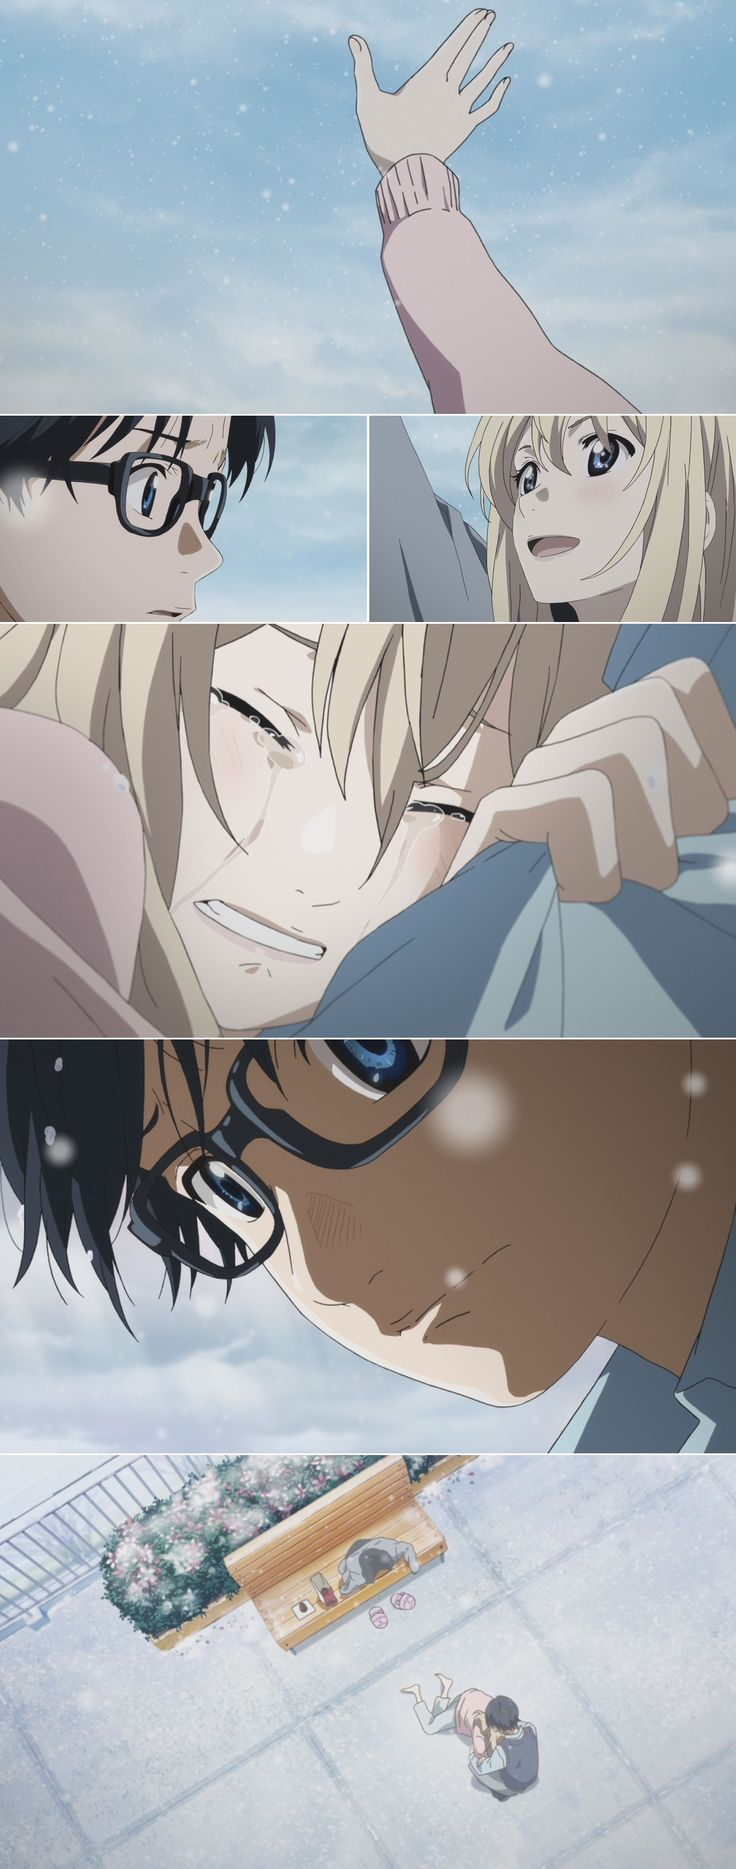 30 day anime challenge saddest anime scene makes me cry every time this scene sobs the death of kaori